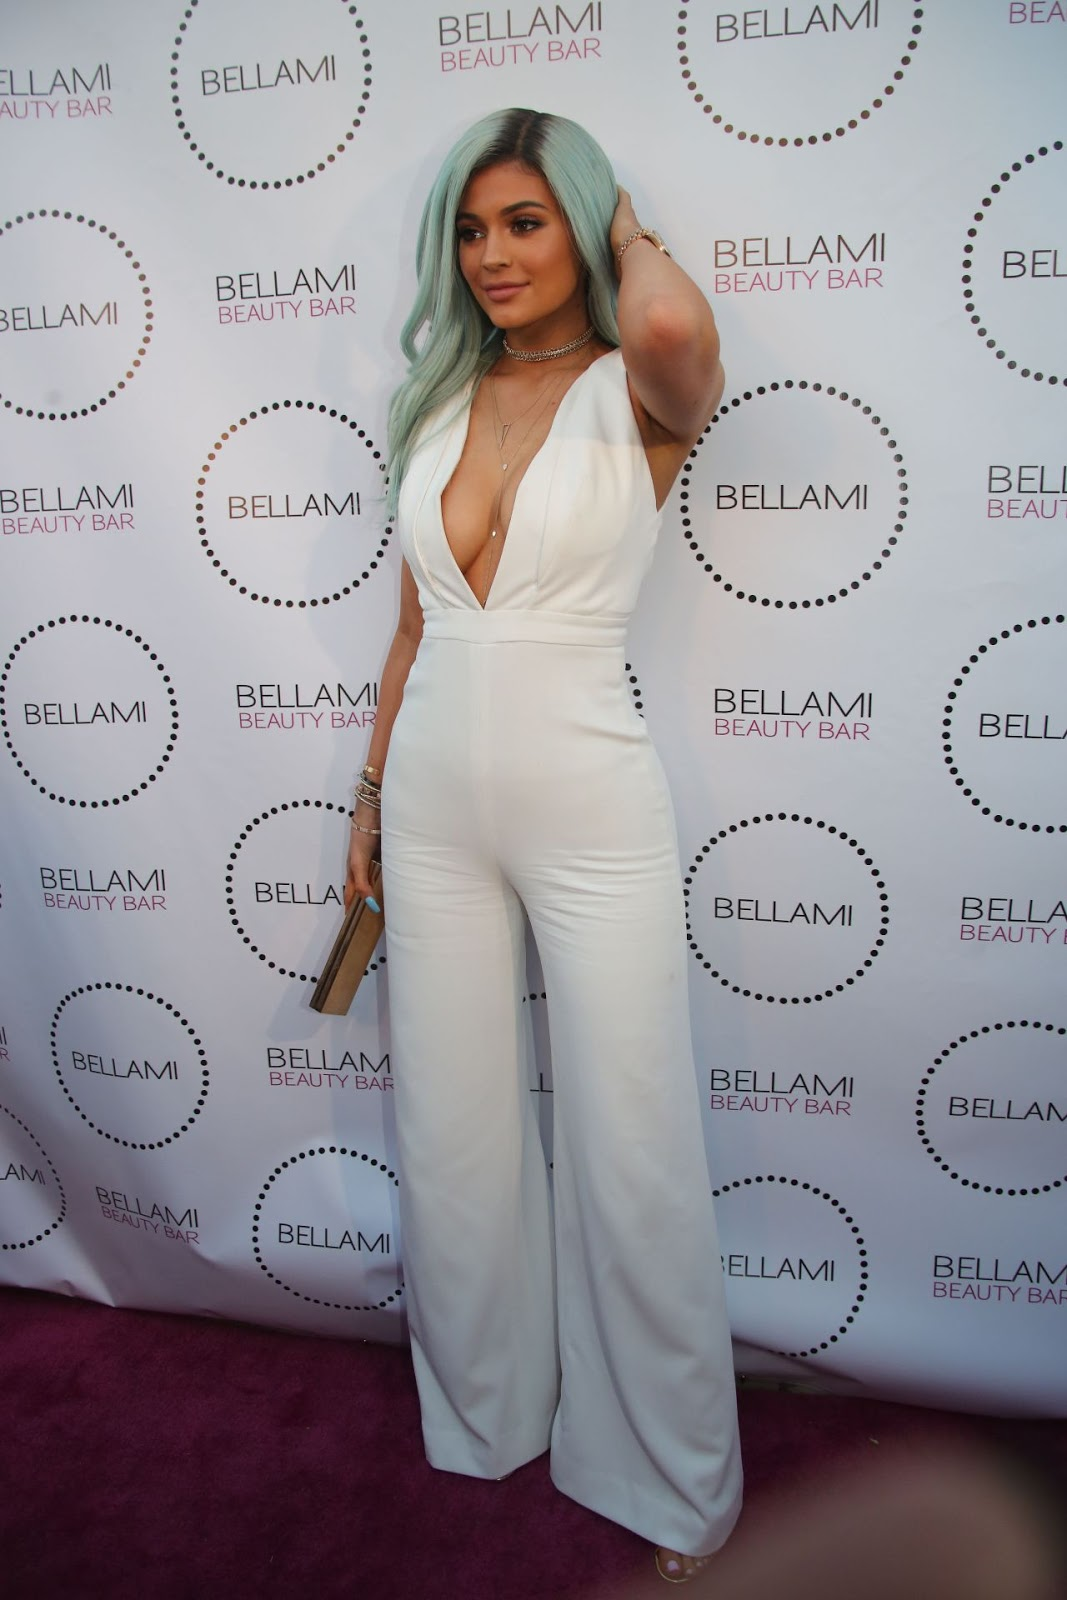 Kylie Jenner flaunts cleavage and icy blue hair at Bellami Beauty Bar